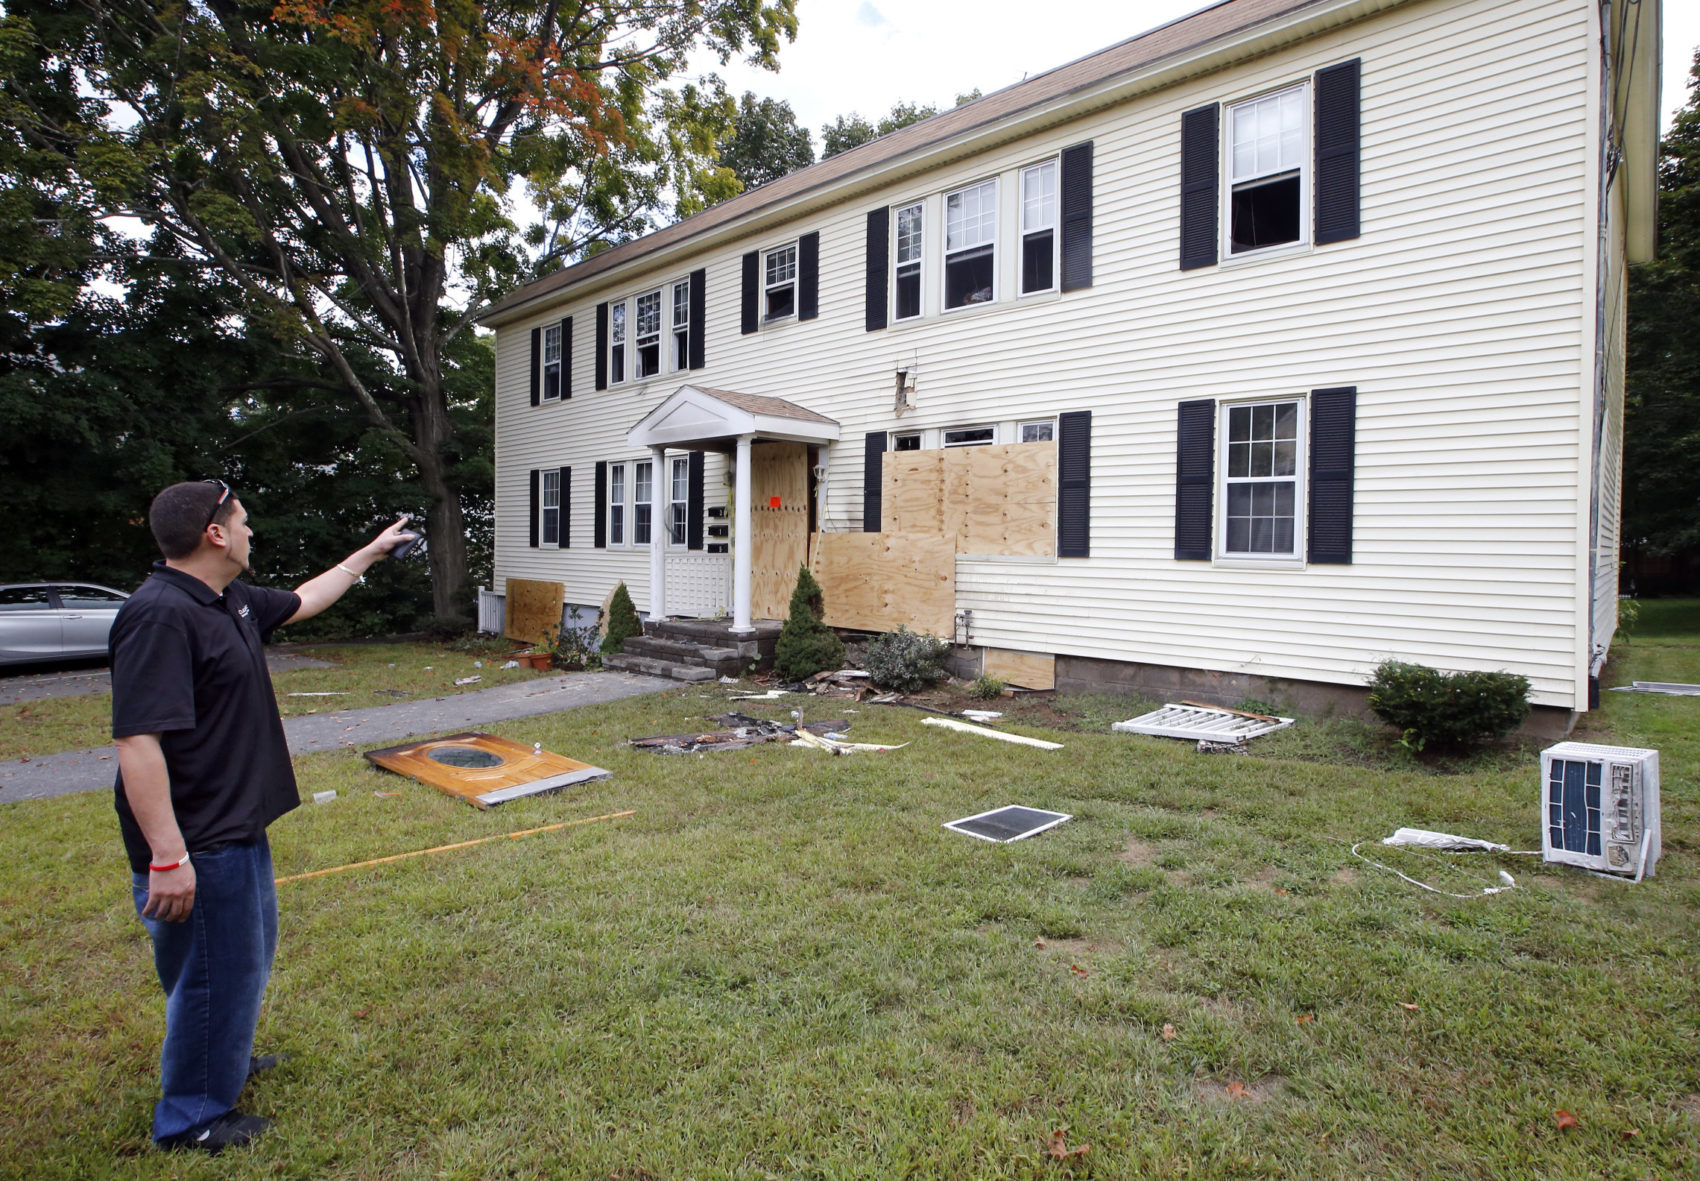 Josef Koch of Clean Joe, a disaster restoration service, looks over a house damaged by fire Friday in Andover. (Winslow Townson/AP)